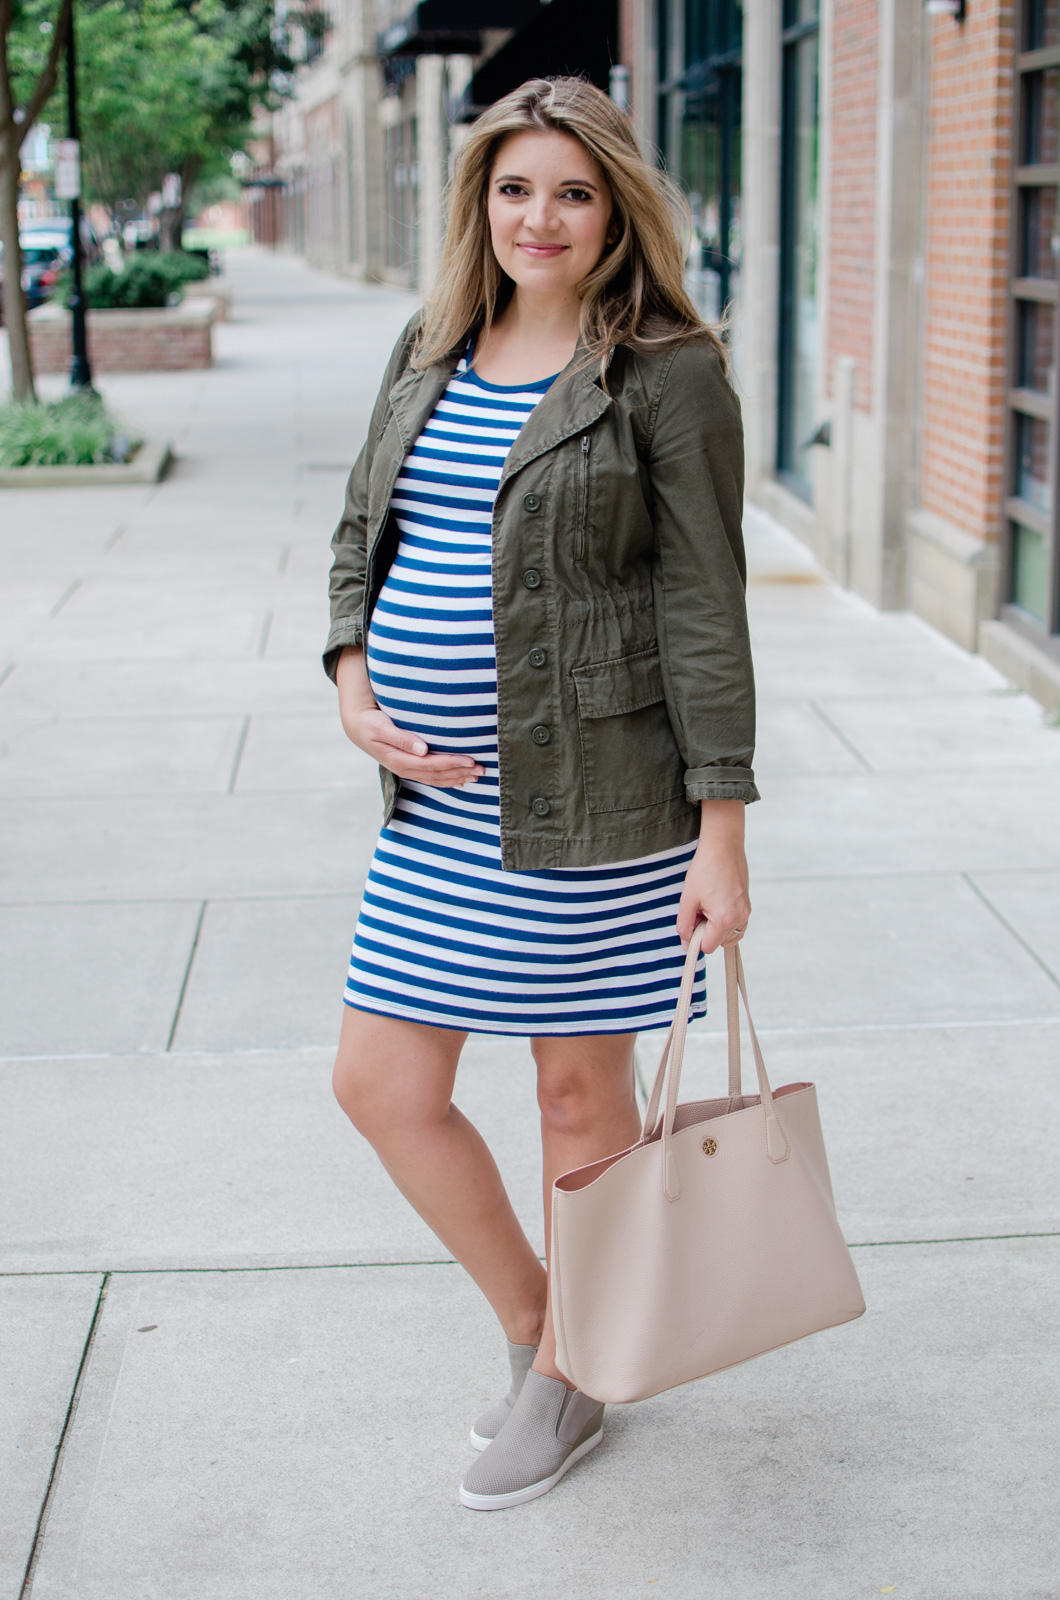 fall casual maternity style - how to wear a cargo jacket | bylaurenm.com